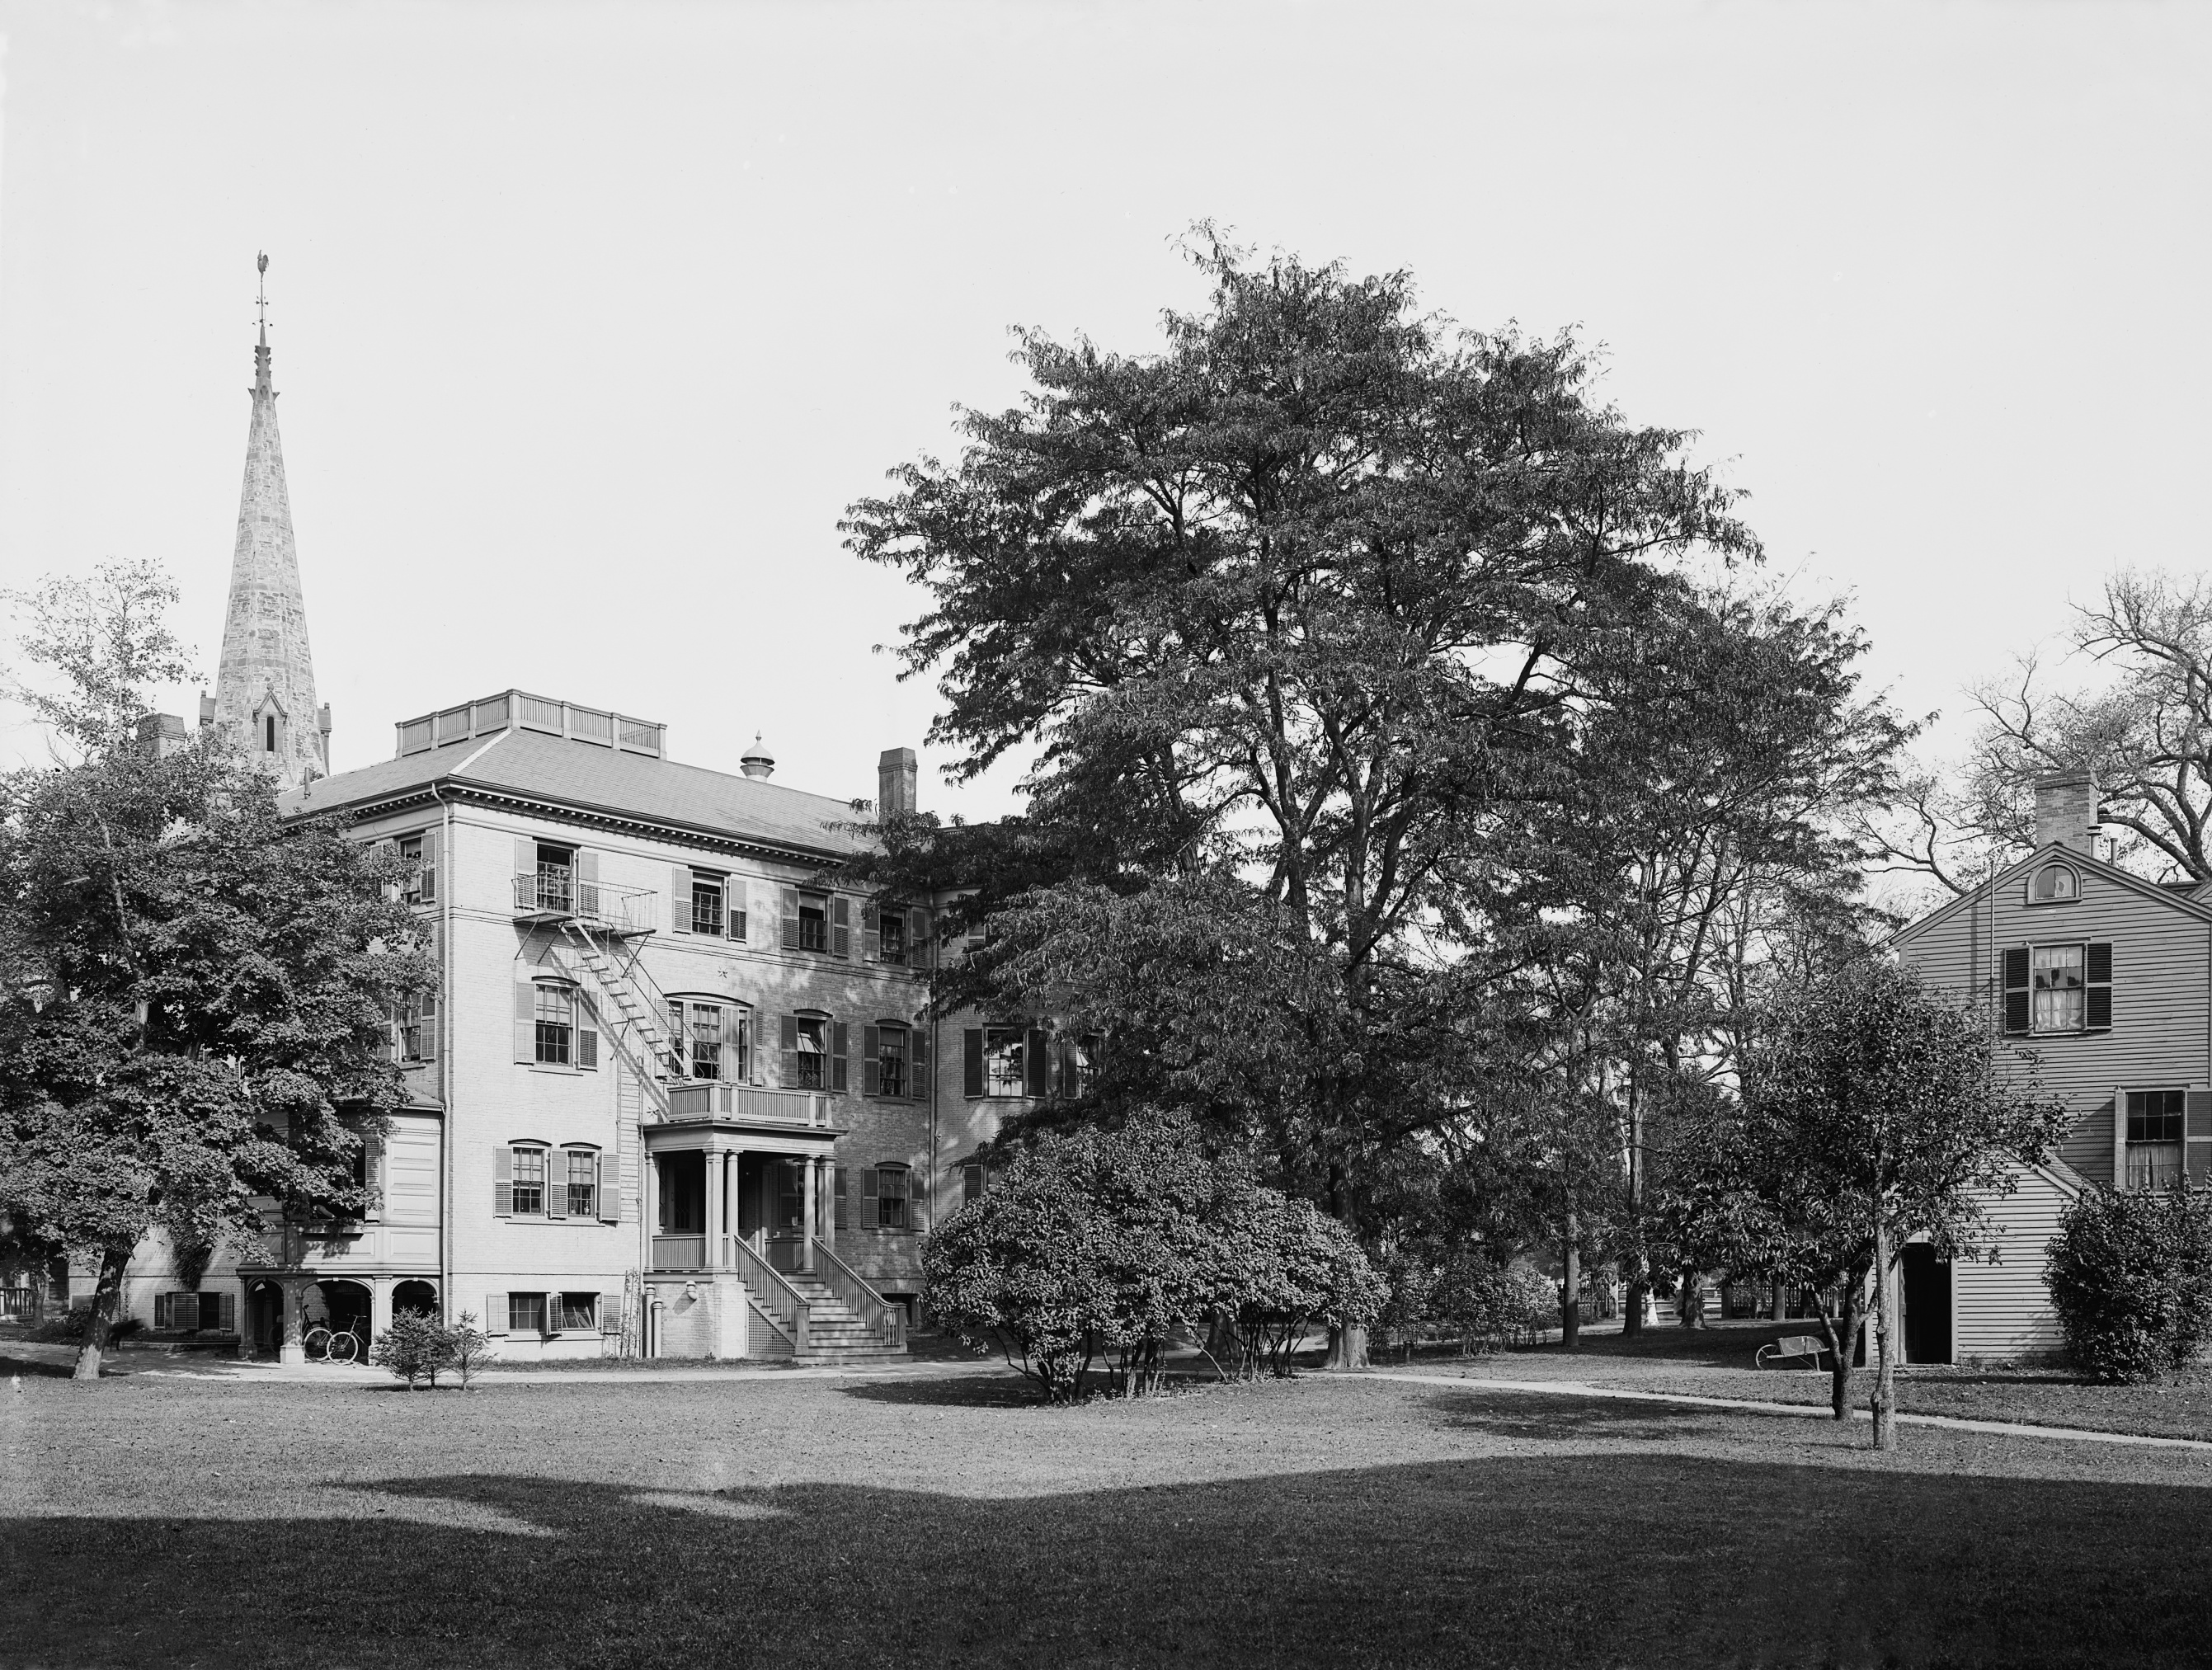 http://upload.wikimedia.org/wikipedia/commons/7/73/Radcliffe_college.jpg